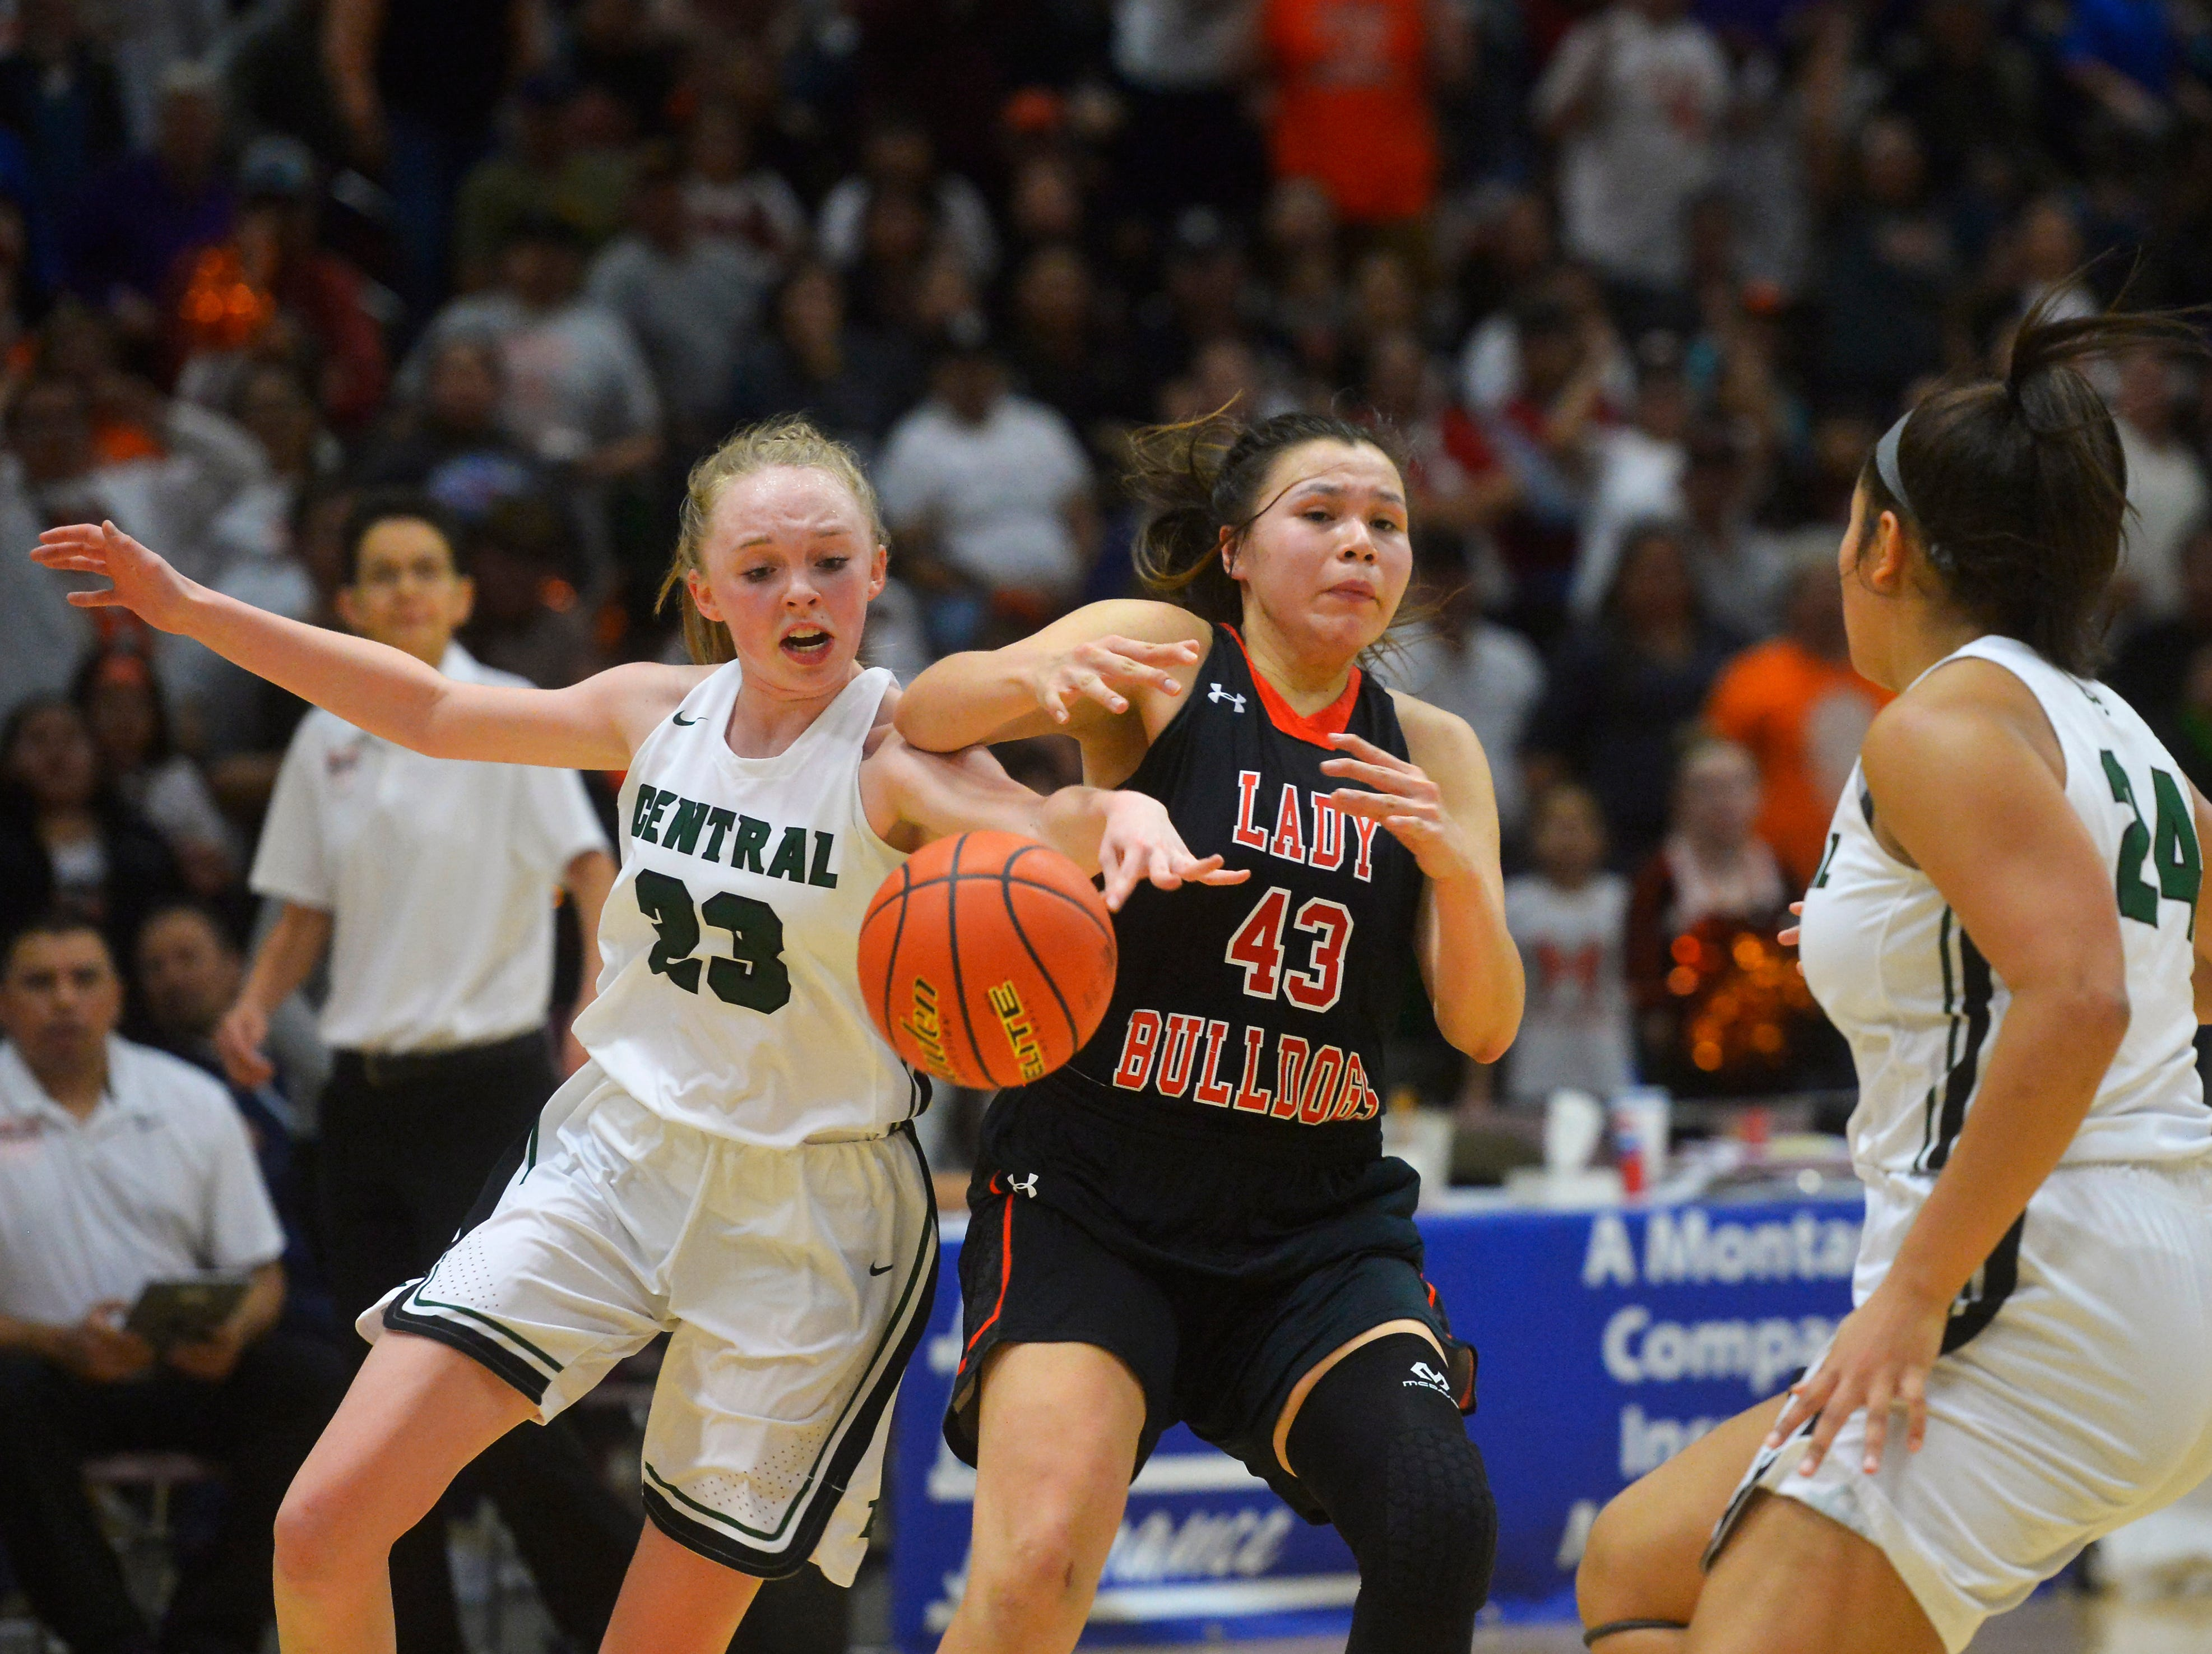 Billings Central's Isabelle Erickson knocks the ball away from Hardin's Marie Five in the girls semifinal game of the State Class A Basketball Tournament in the Four Seasons Arena, Friday.